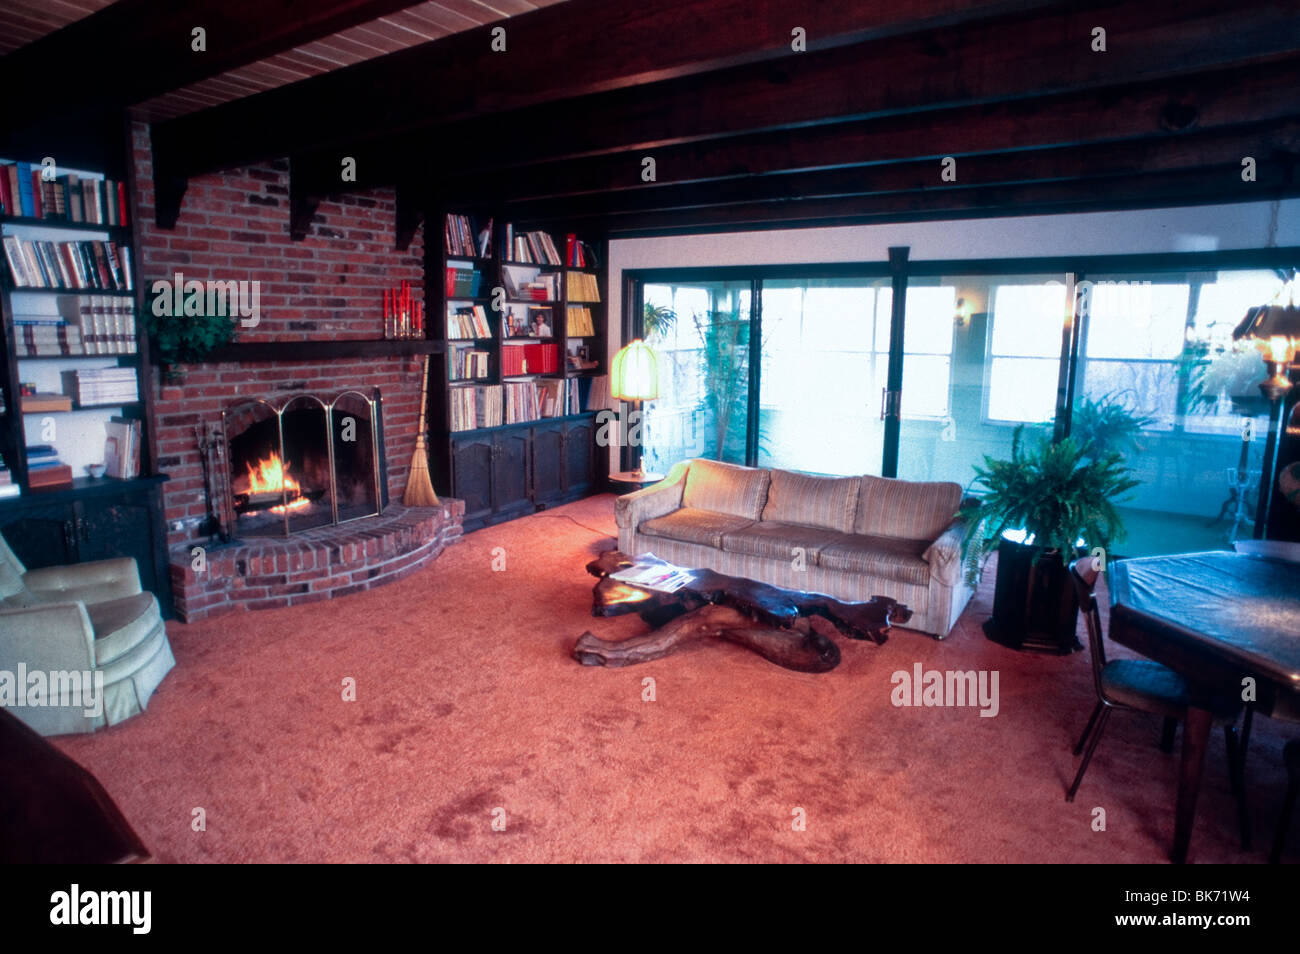 Single Family House, Interior Living Room, Fireplace, Wood Beamed Ceiling, Stock Photo